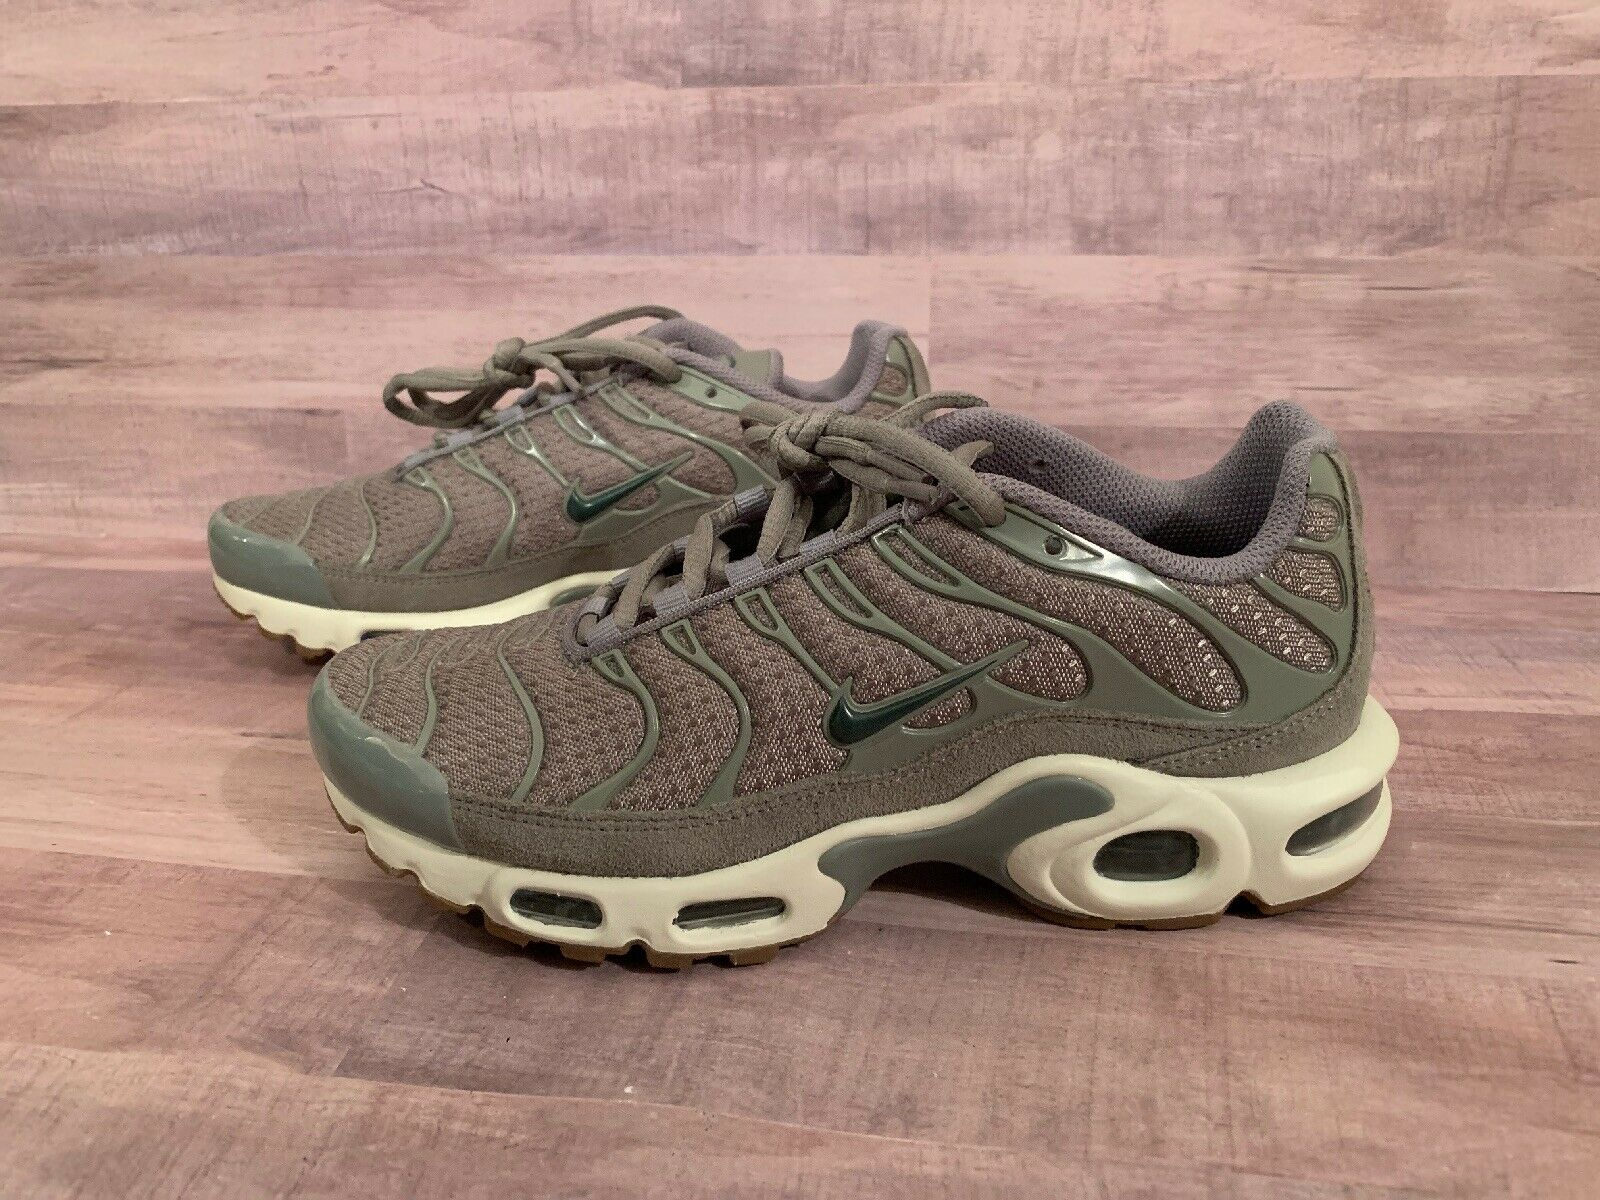 Nike Tn Air Max Plus Dark Stucco Vintage Green Sail Running 605112-053 Women's 7